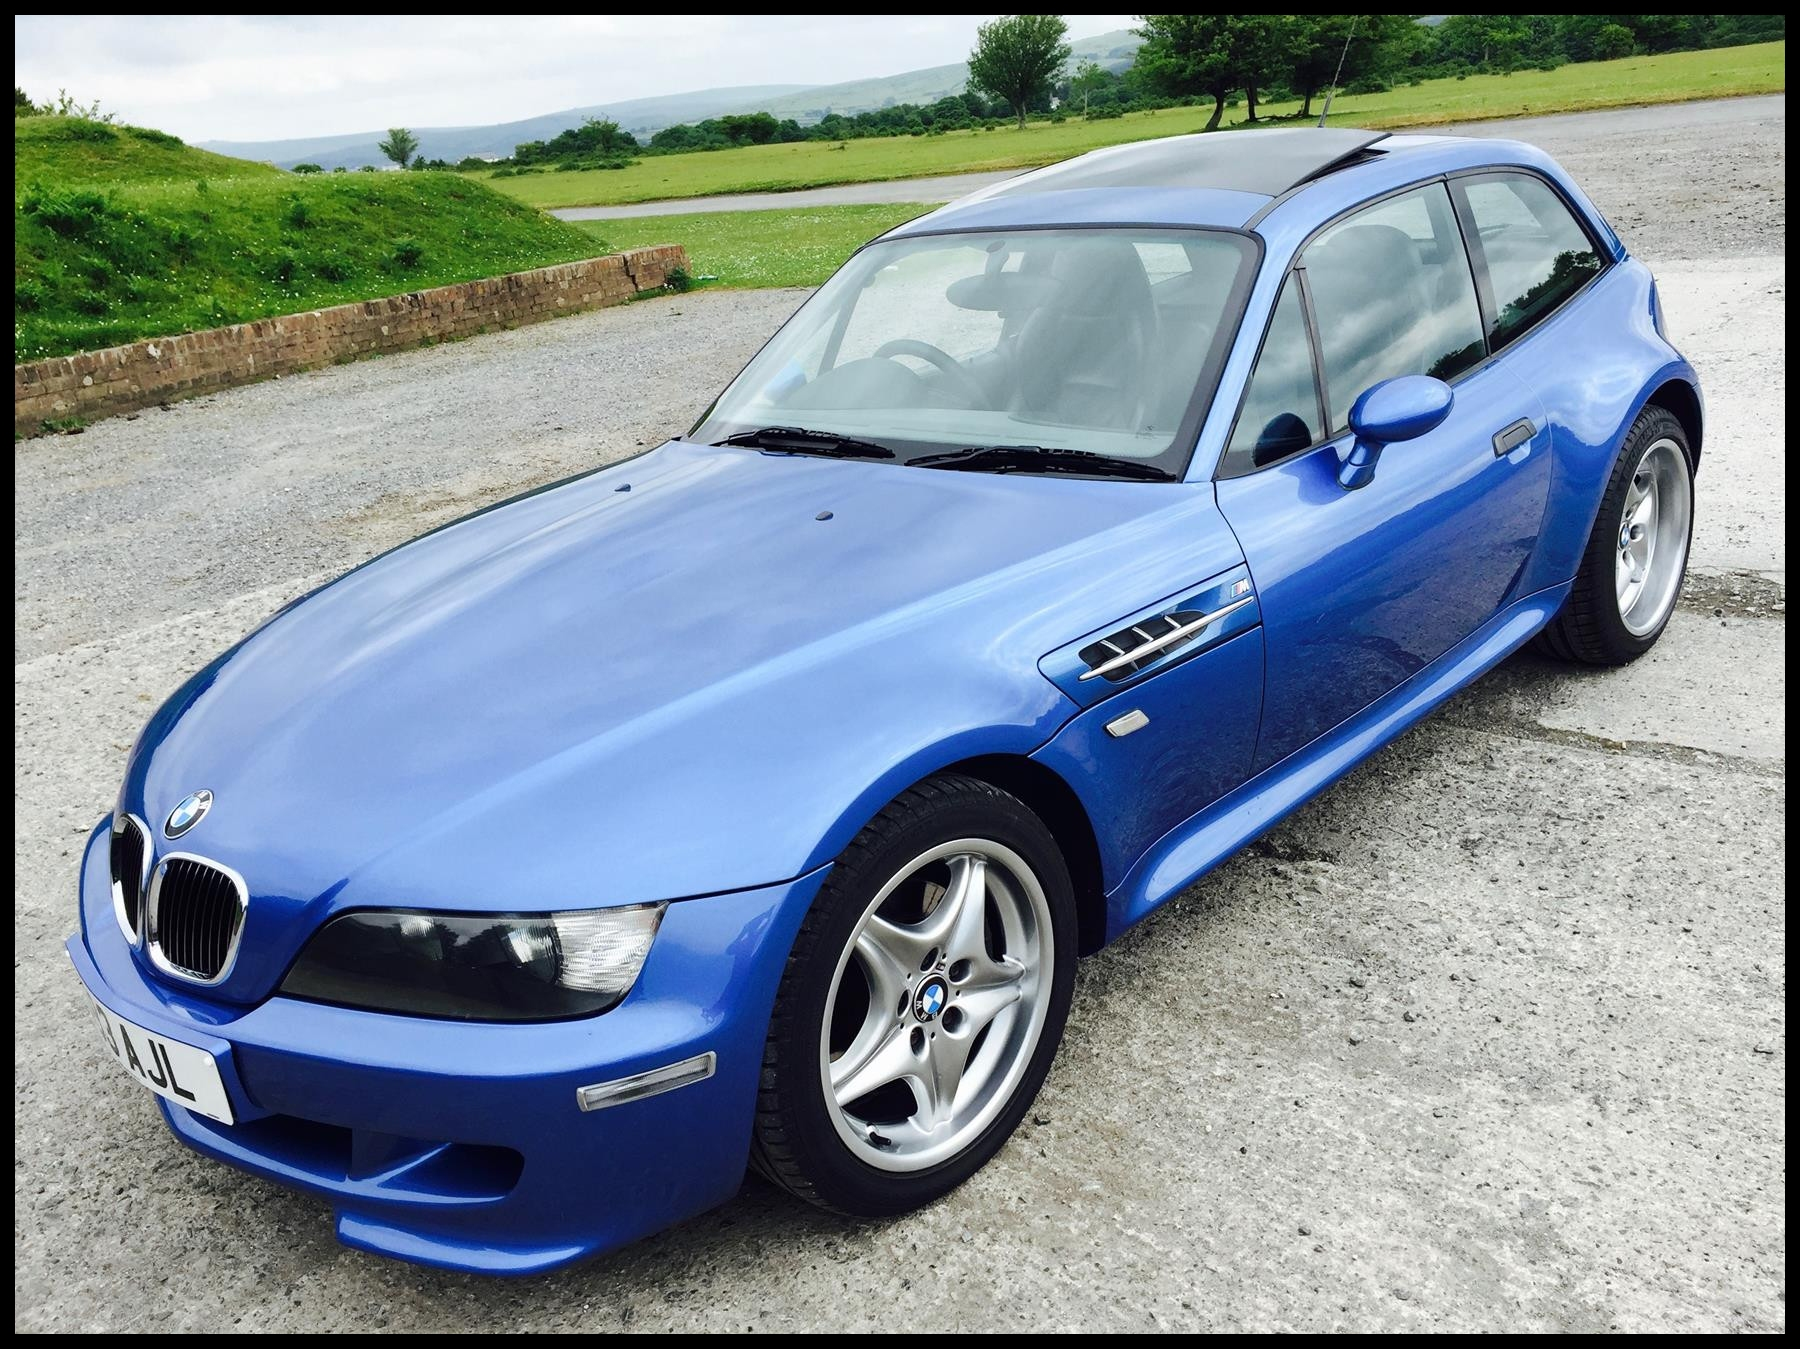 Bmw Z3m Coupe for Sale New Used 1998 Bmw Z3m Coupe M Coupe for Sale In